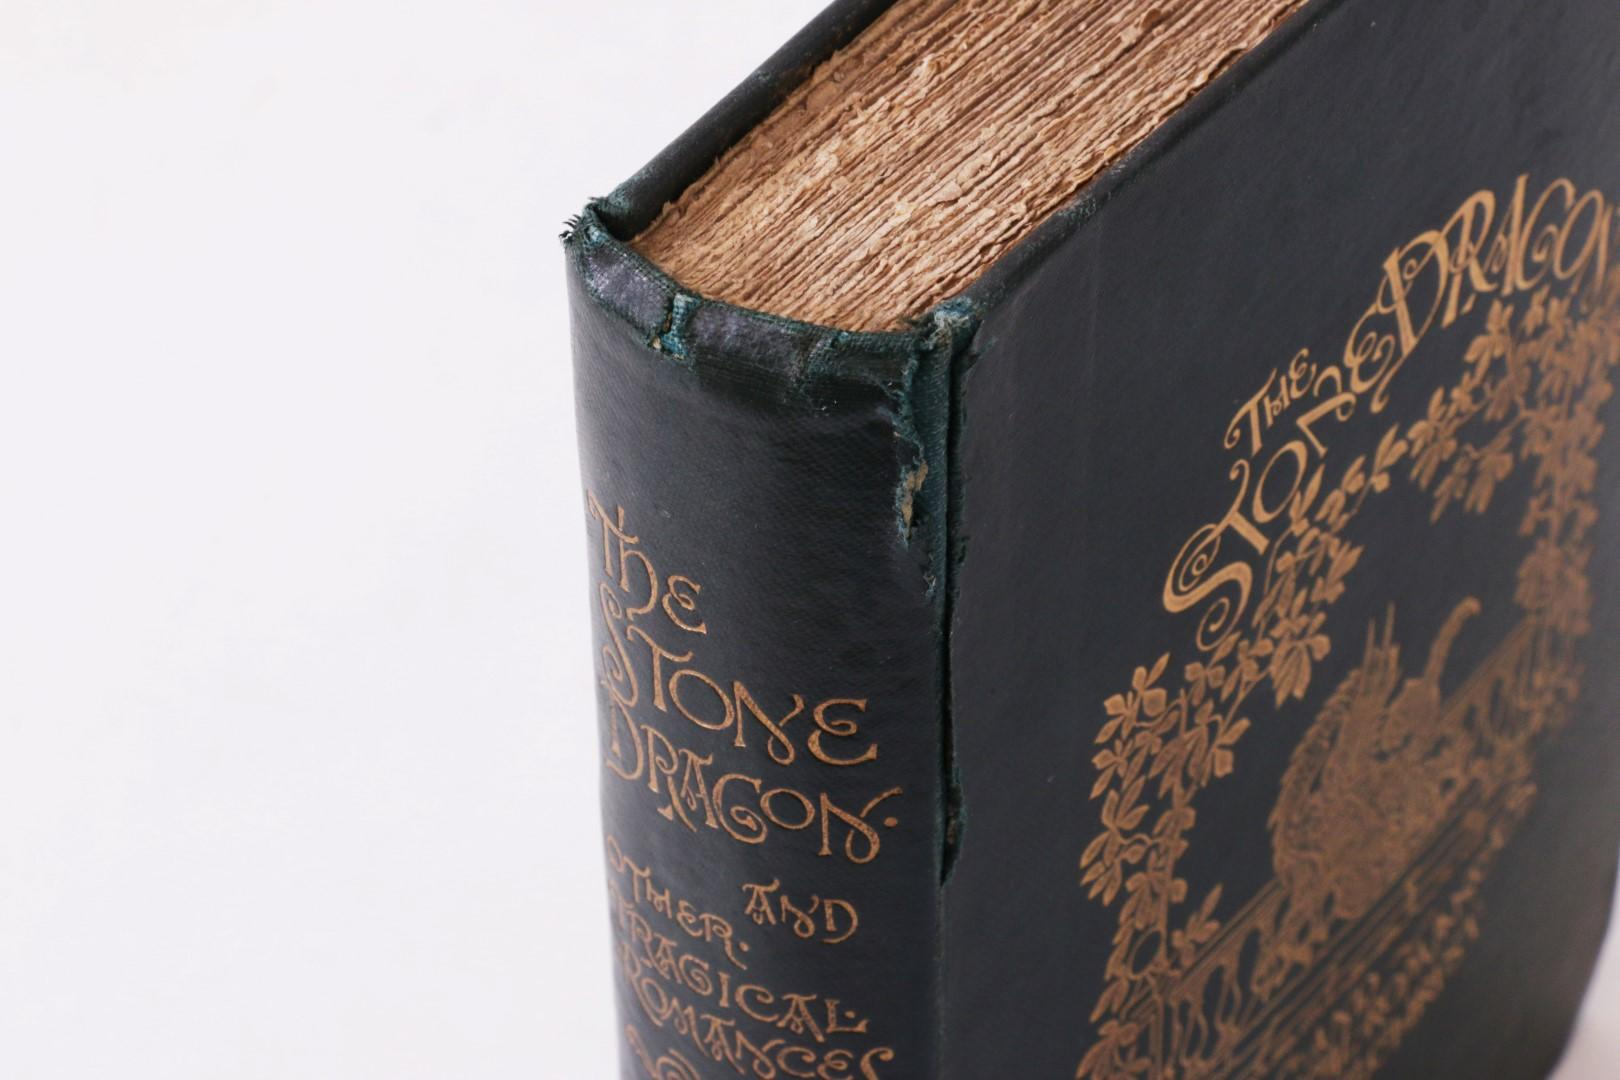 R. Murray Gilchrist - The Stone Dragon & Other Tragical Romances - Methuen, 1894, First Edition.